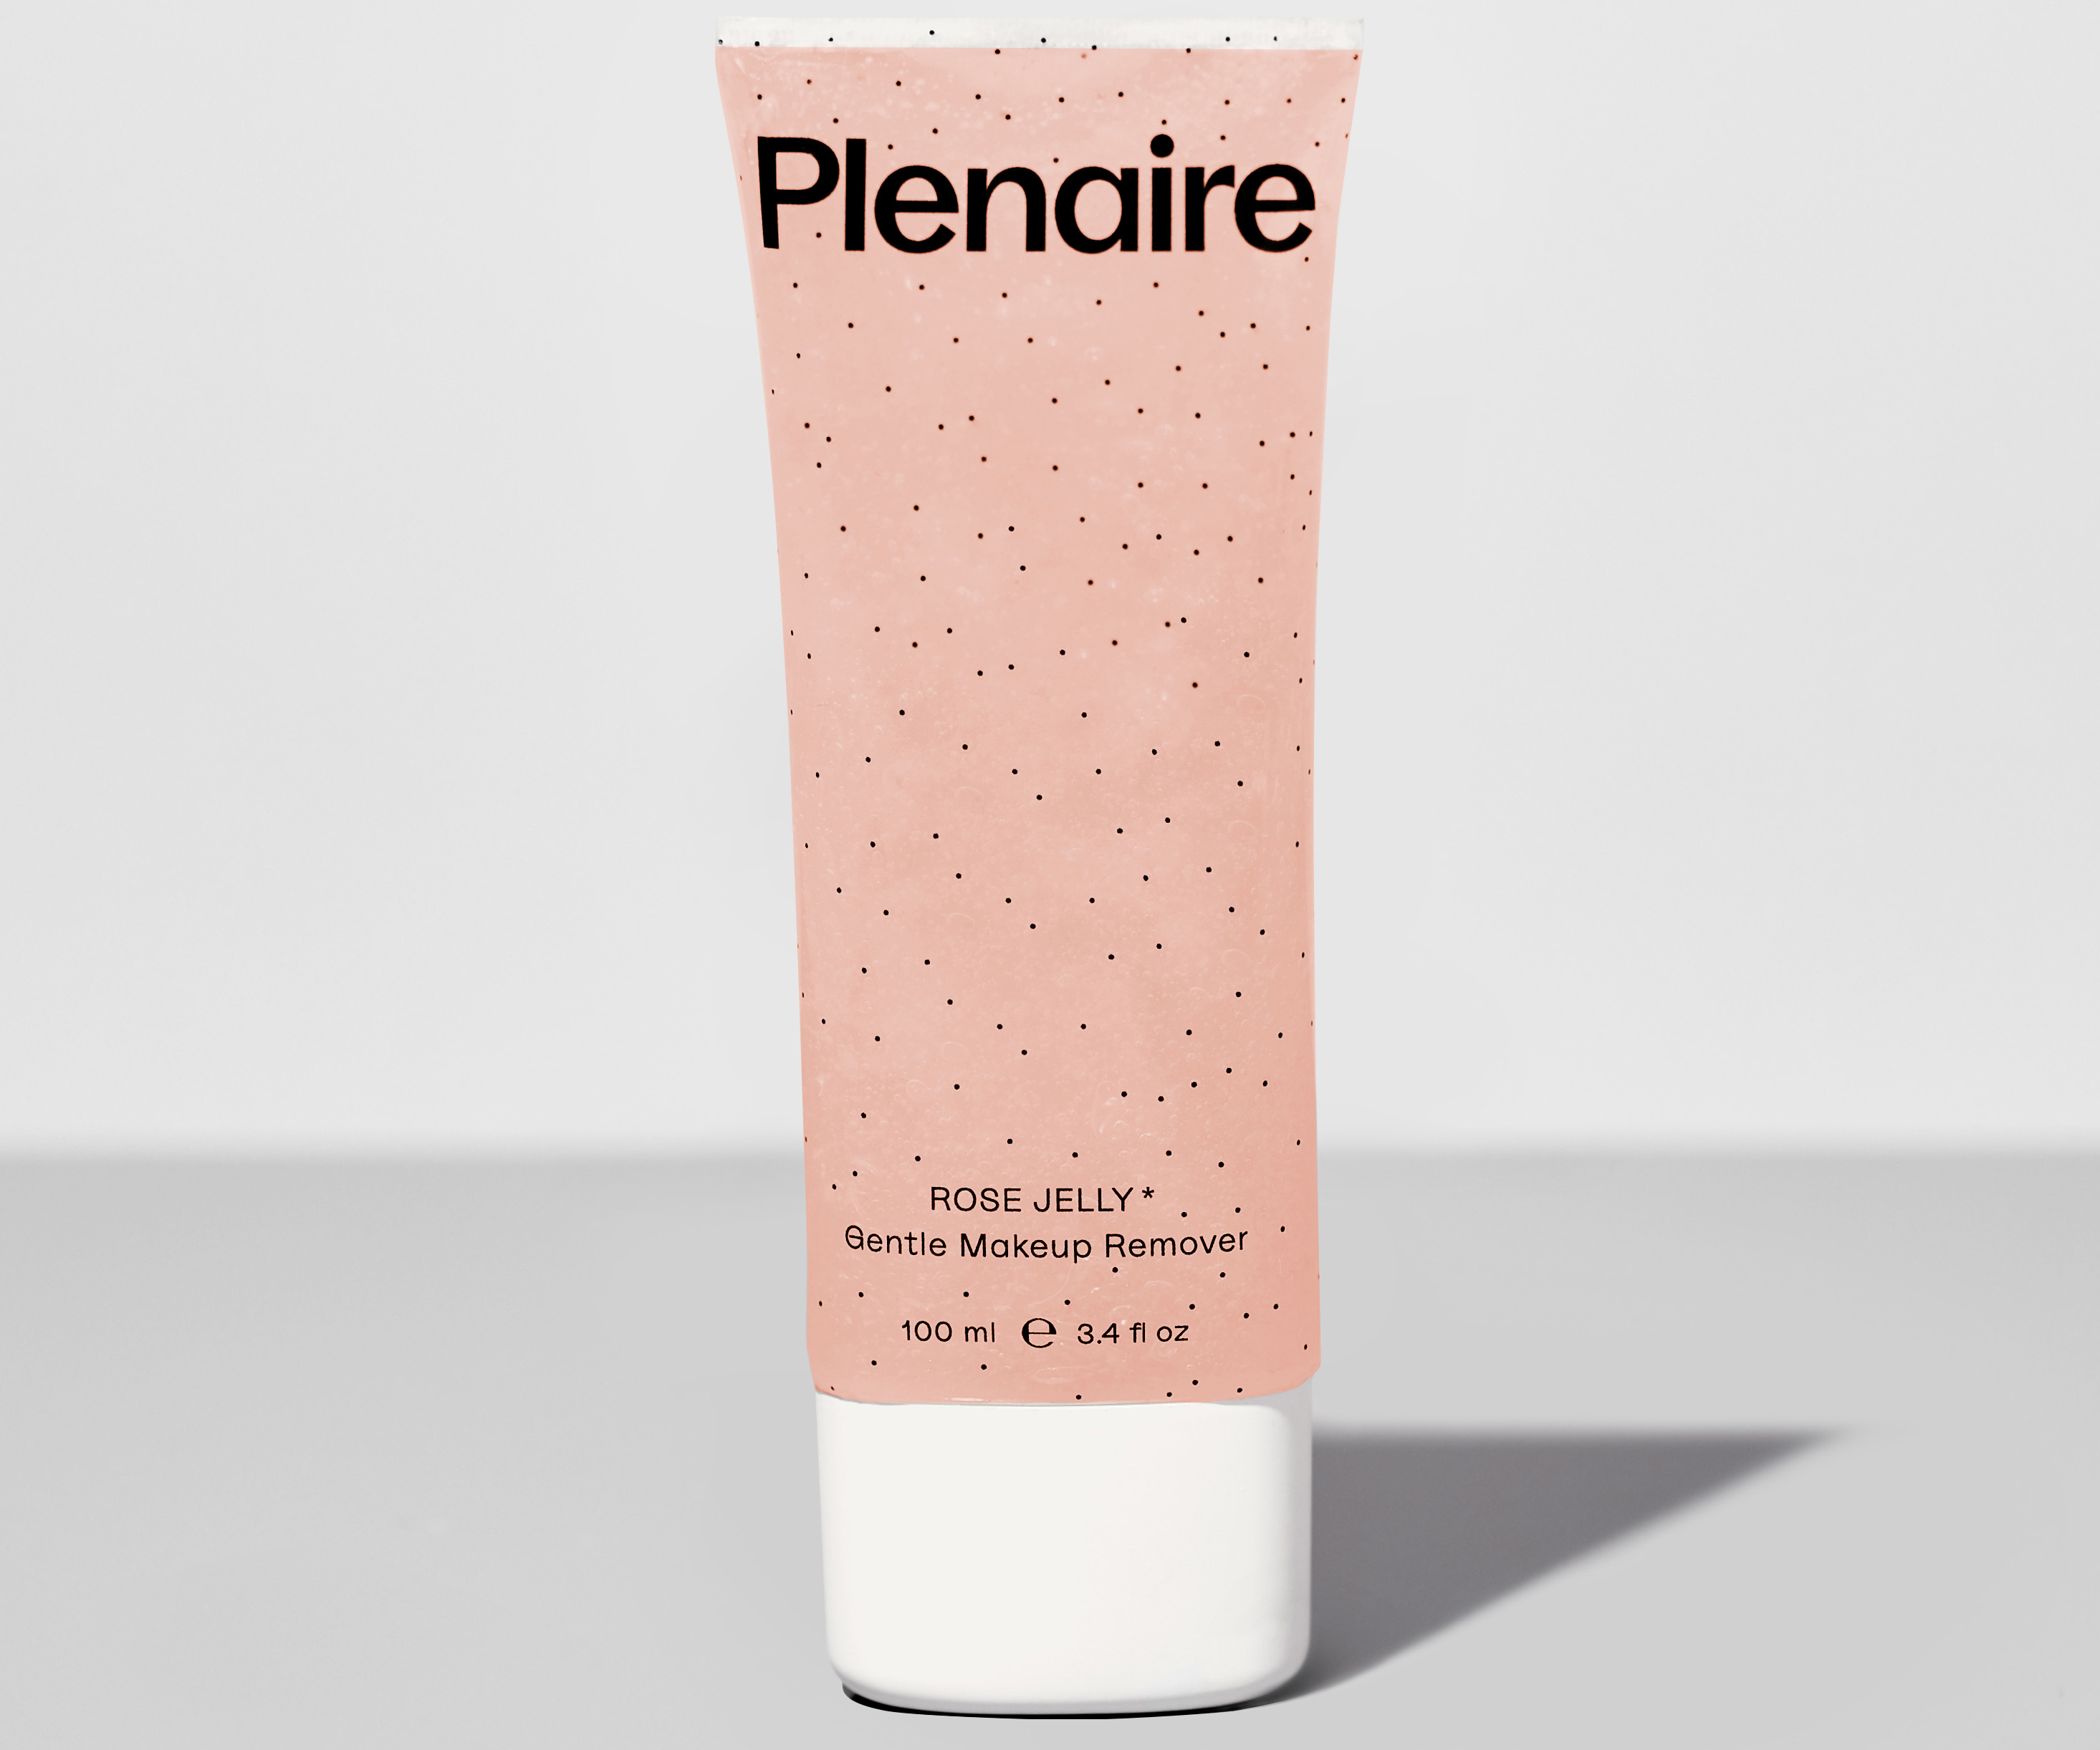 Plenaire Rose Jelly Gentle Make-up Remover